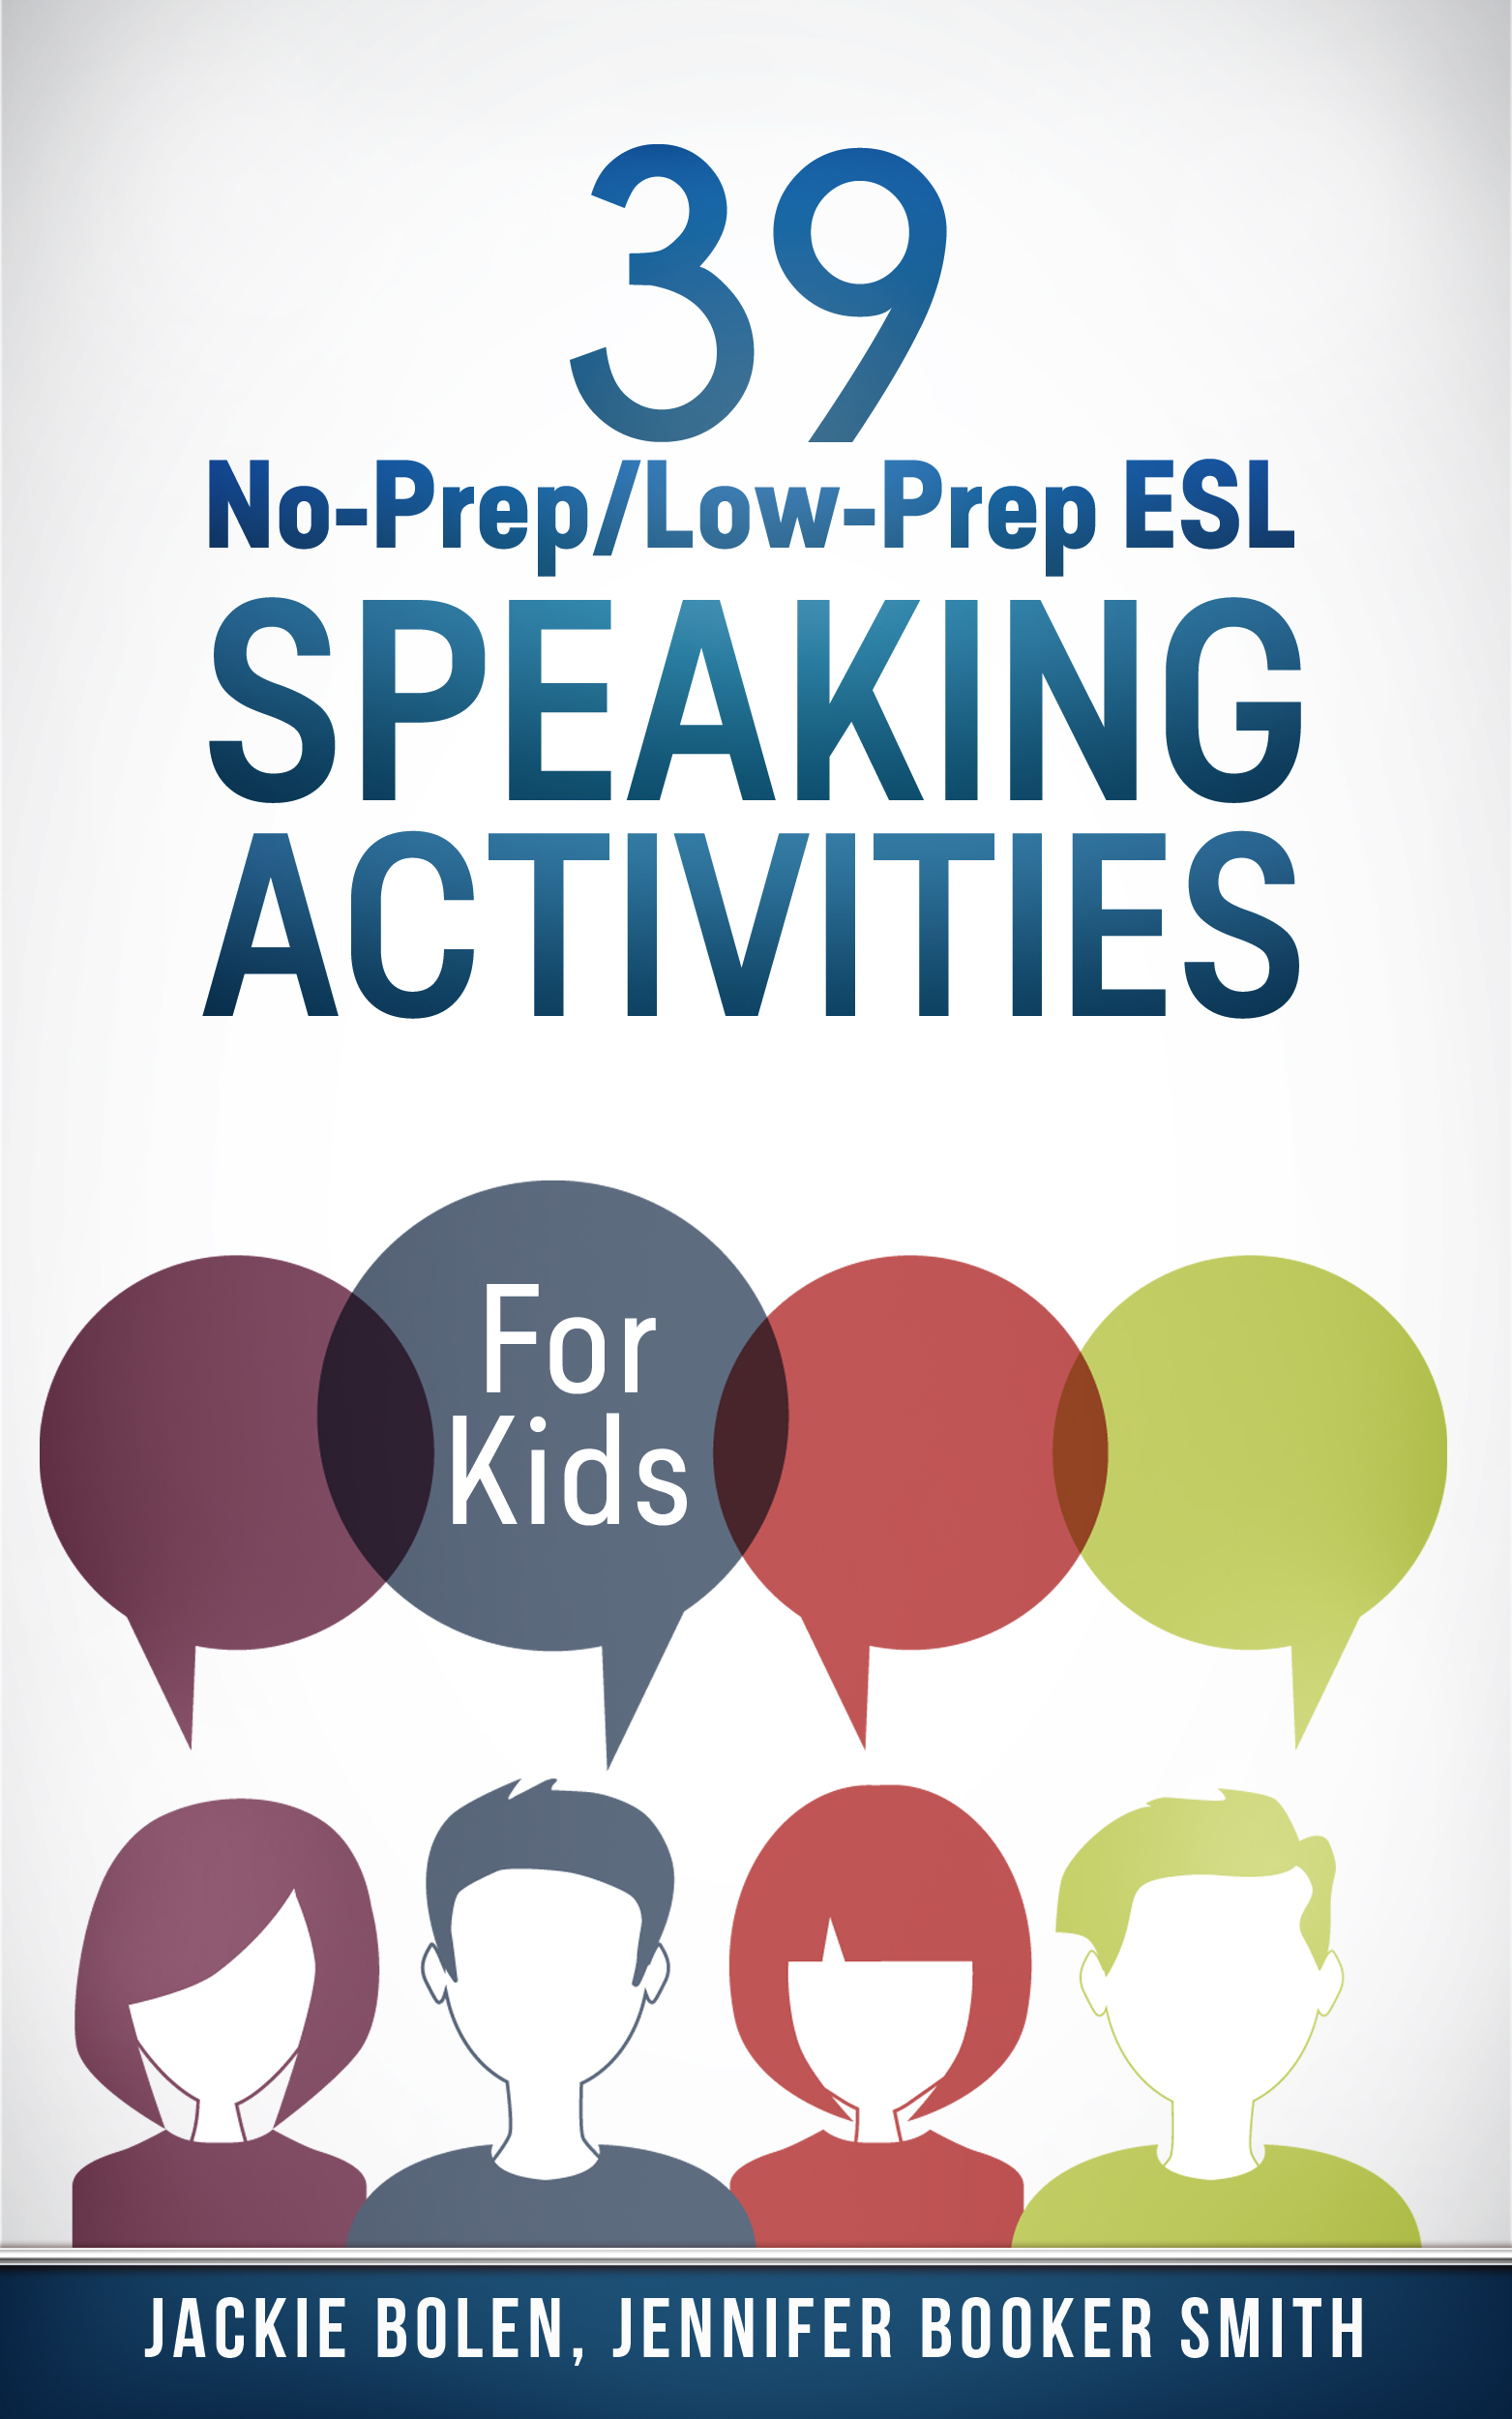 Esl Speaking Activities For Kids 7